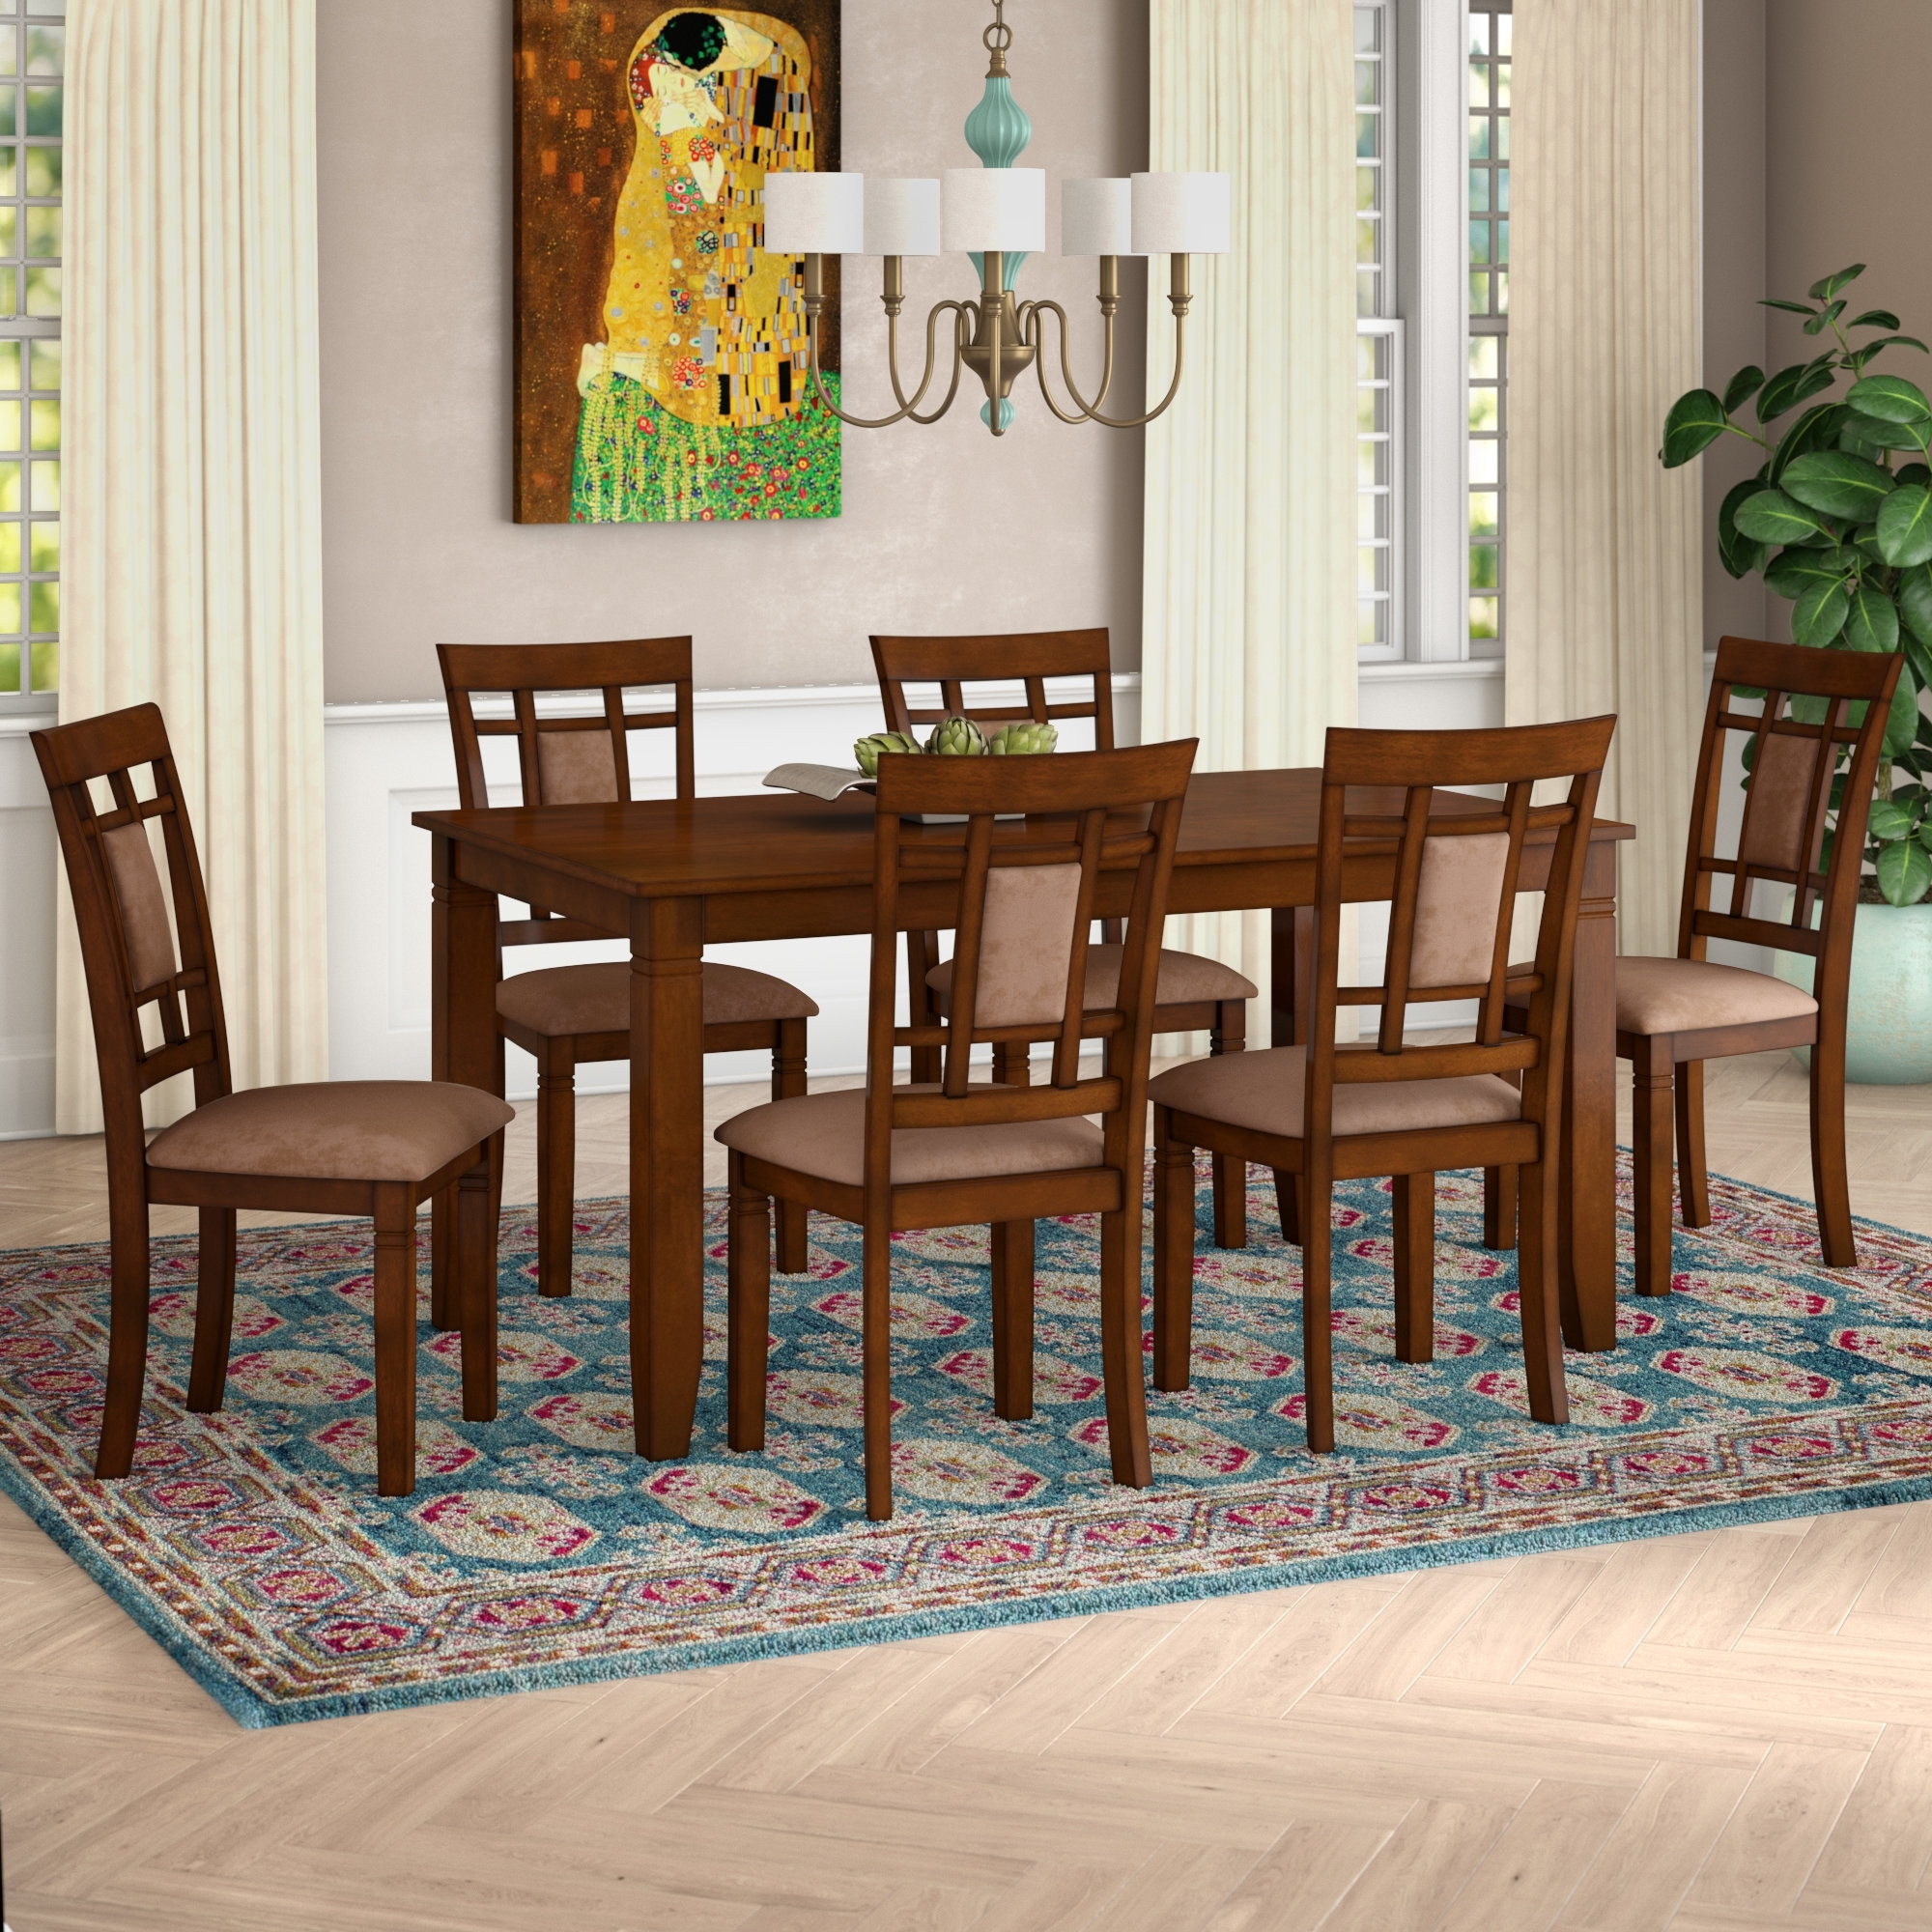 Wayfair With Regard To 2018 Norwood 6 Piece Rectangular Extension Dining Sets With Upholstered Side Chairs (View 25 of 25)